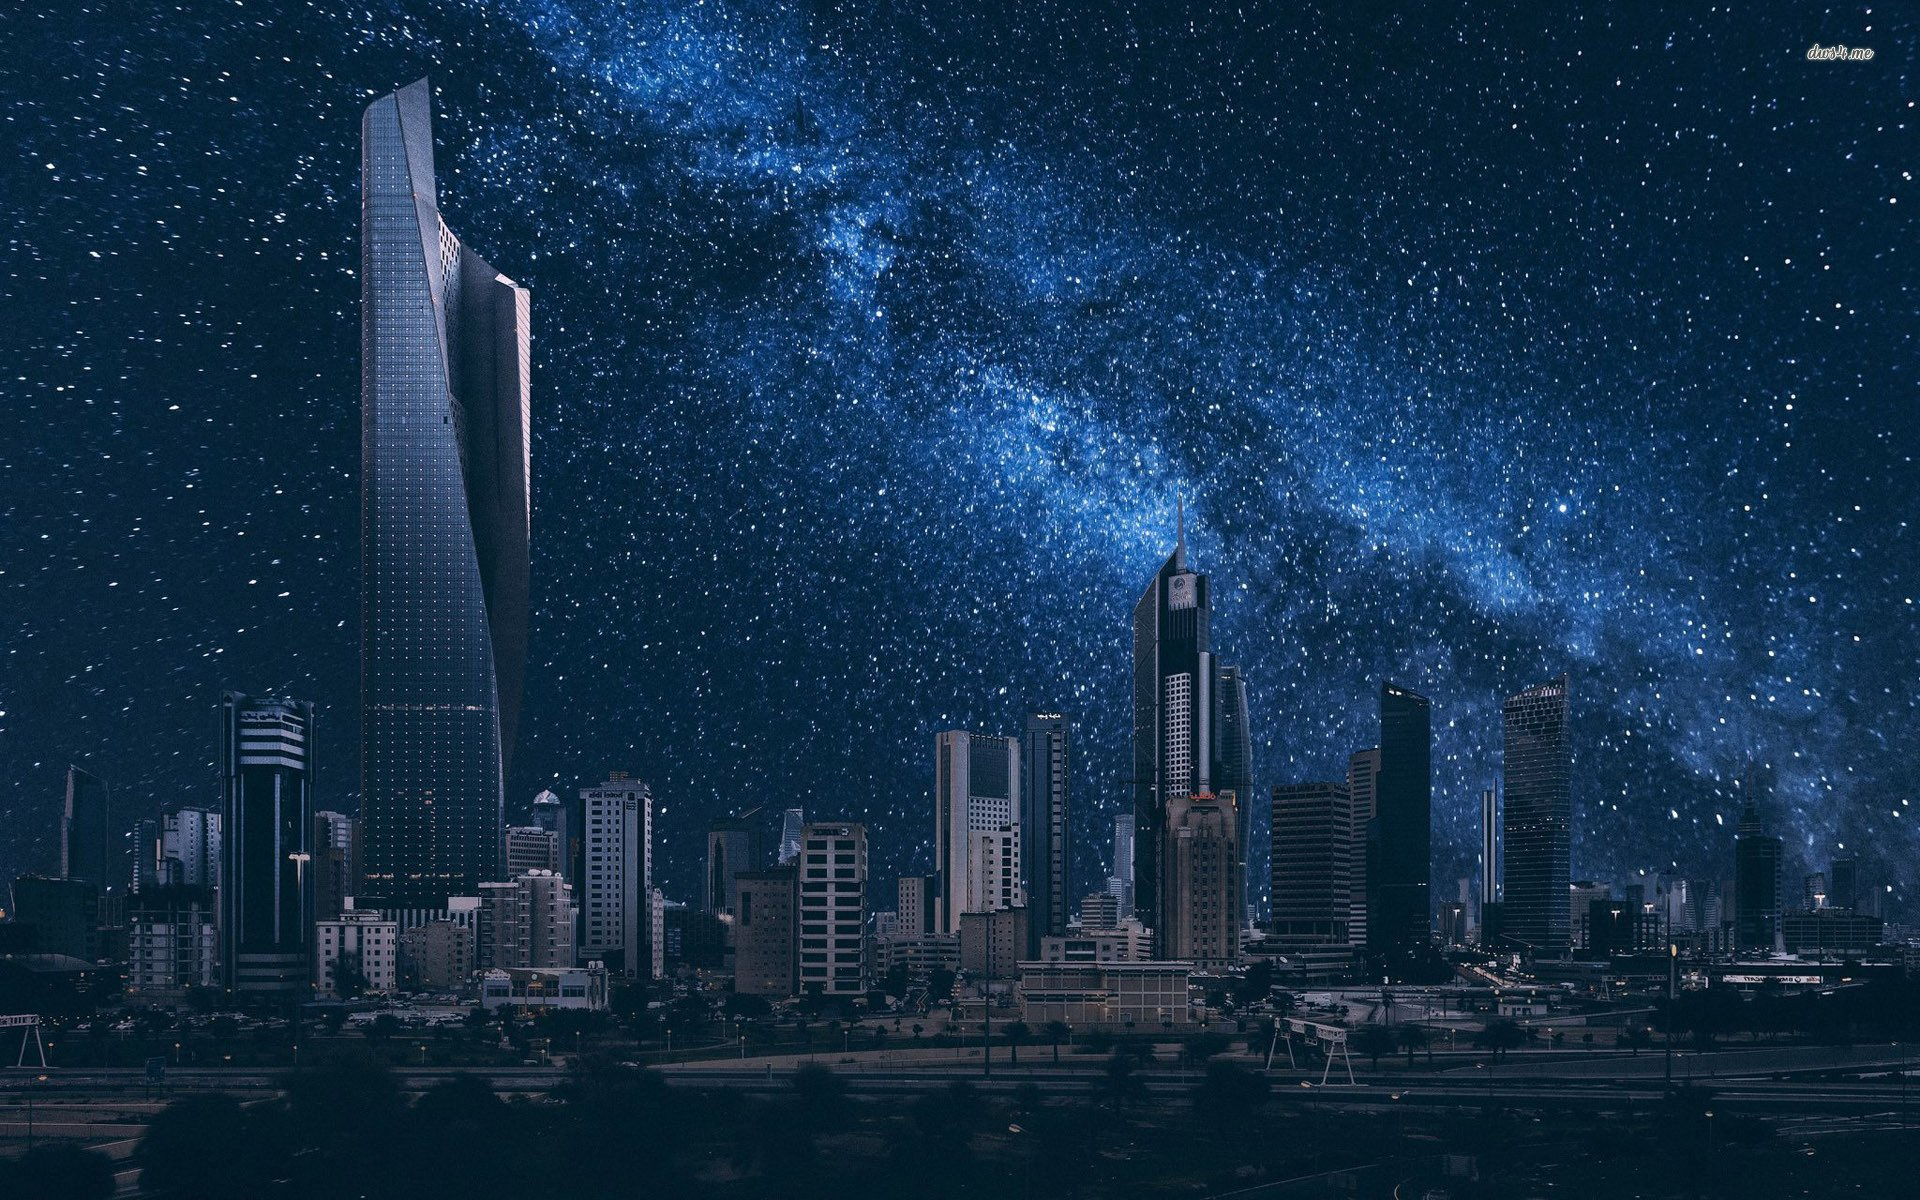 Kuwait City Wallpapers and Background Images   stmednet 1920x1200